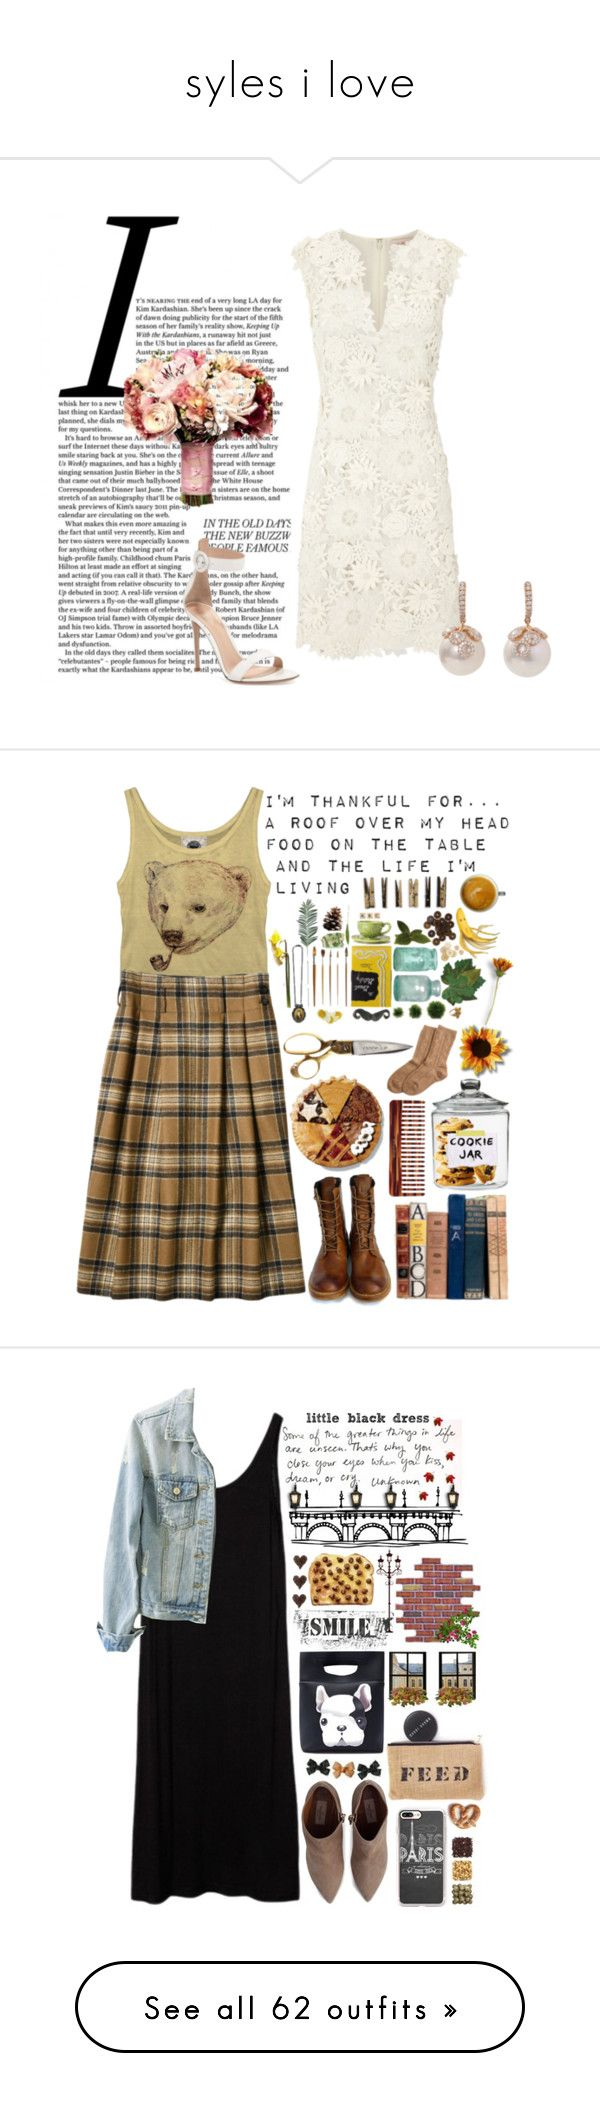 """syles i love"" by armsdani ❤ liked on Polyvore featuring Timberland Boot Company, OPTIONS, Mason Pearson, Bamford, Laundry, tartan, imthankfulfor, Lauren Pierce, Valentino and Casetify"